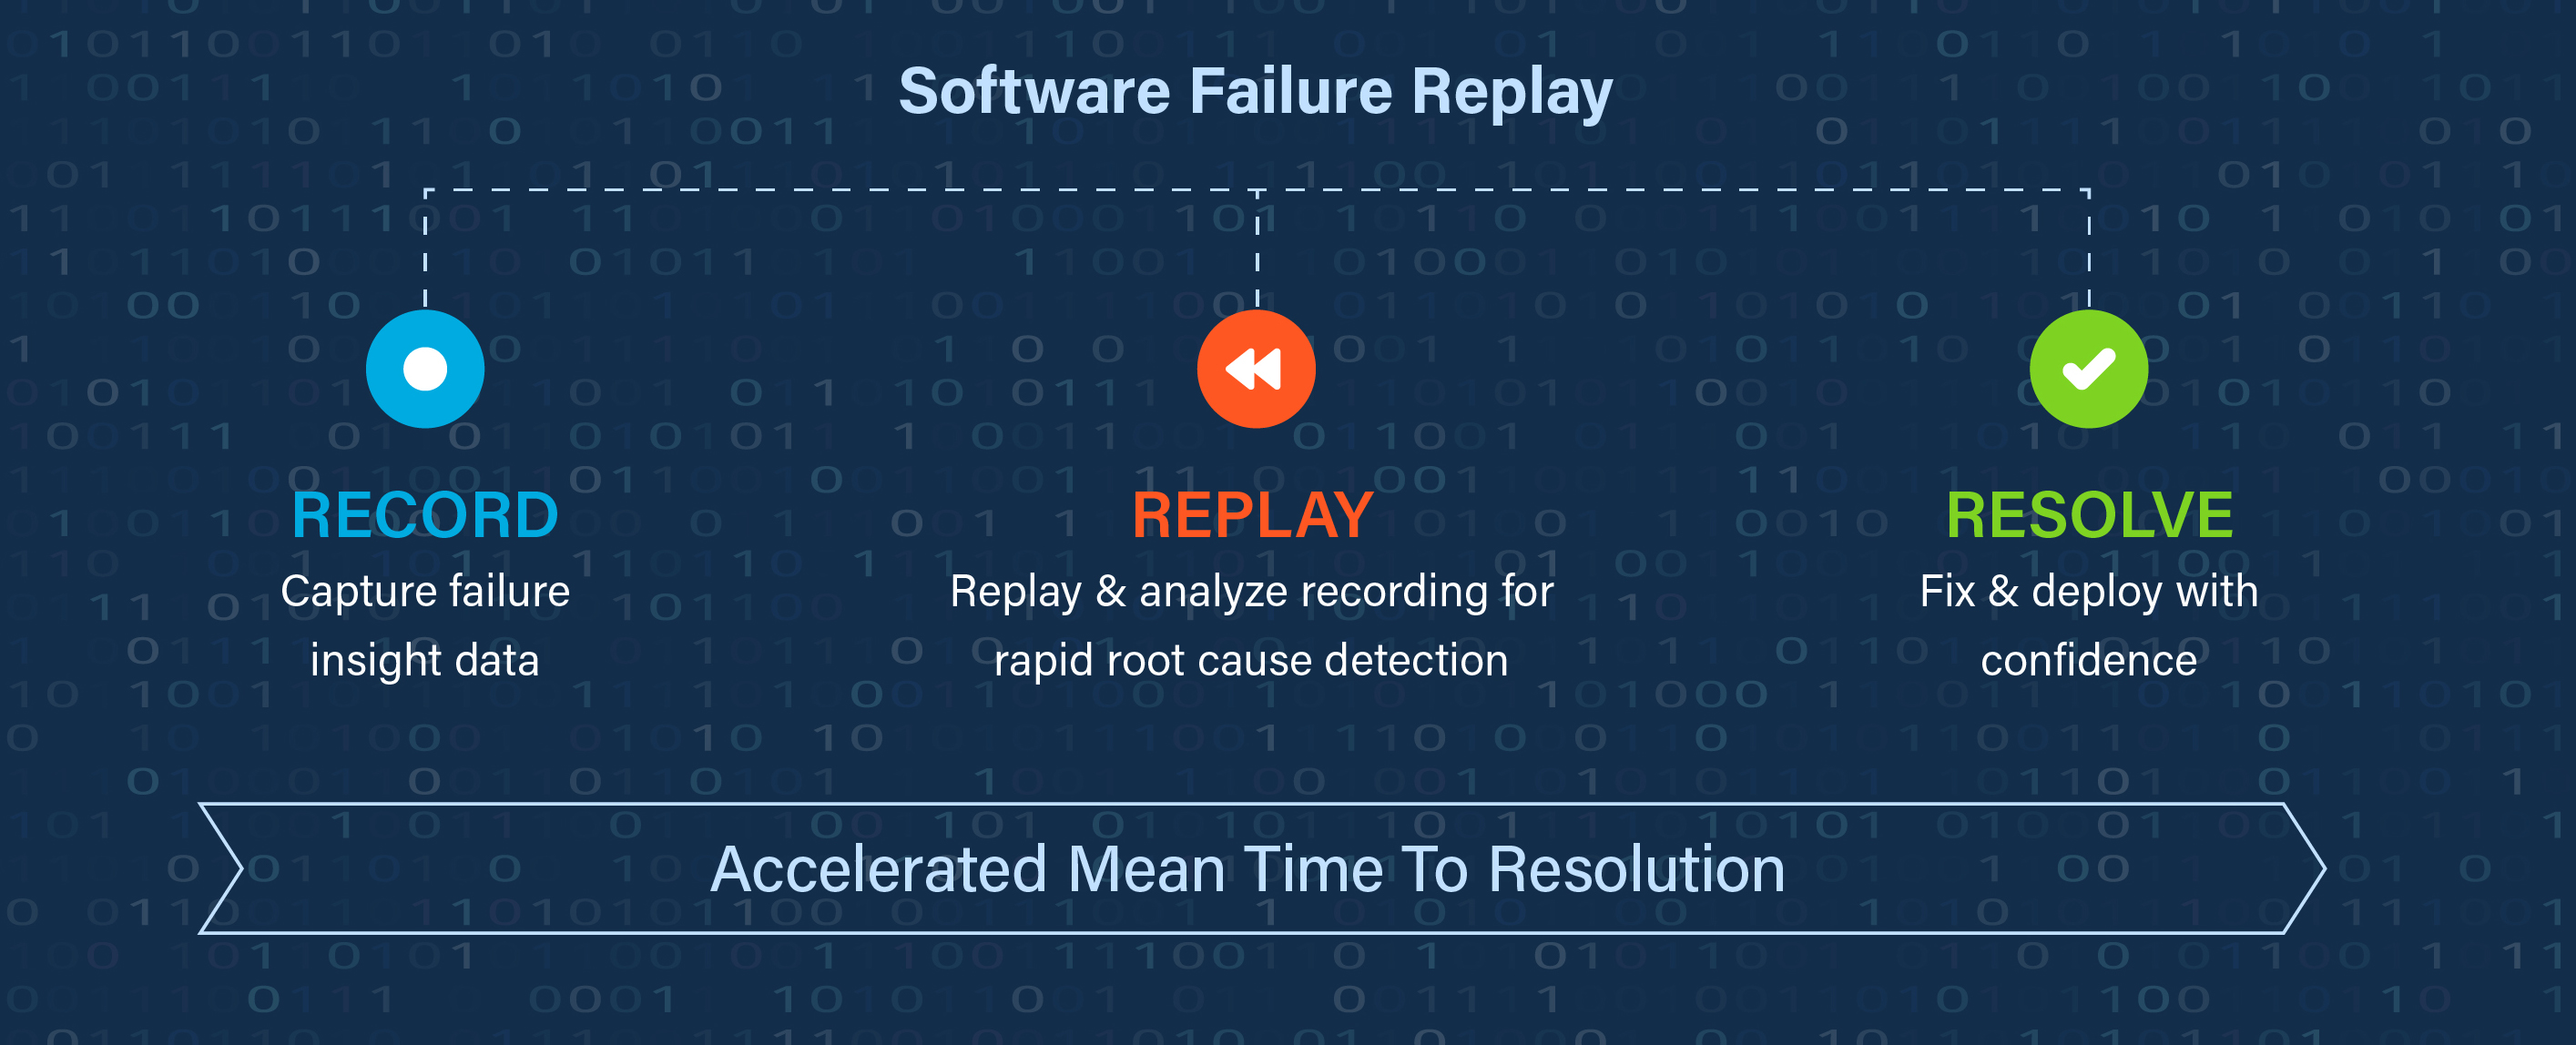 Software Failure Replay explained